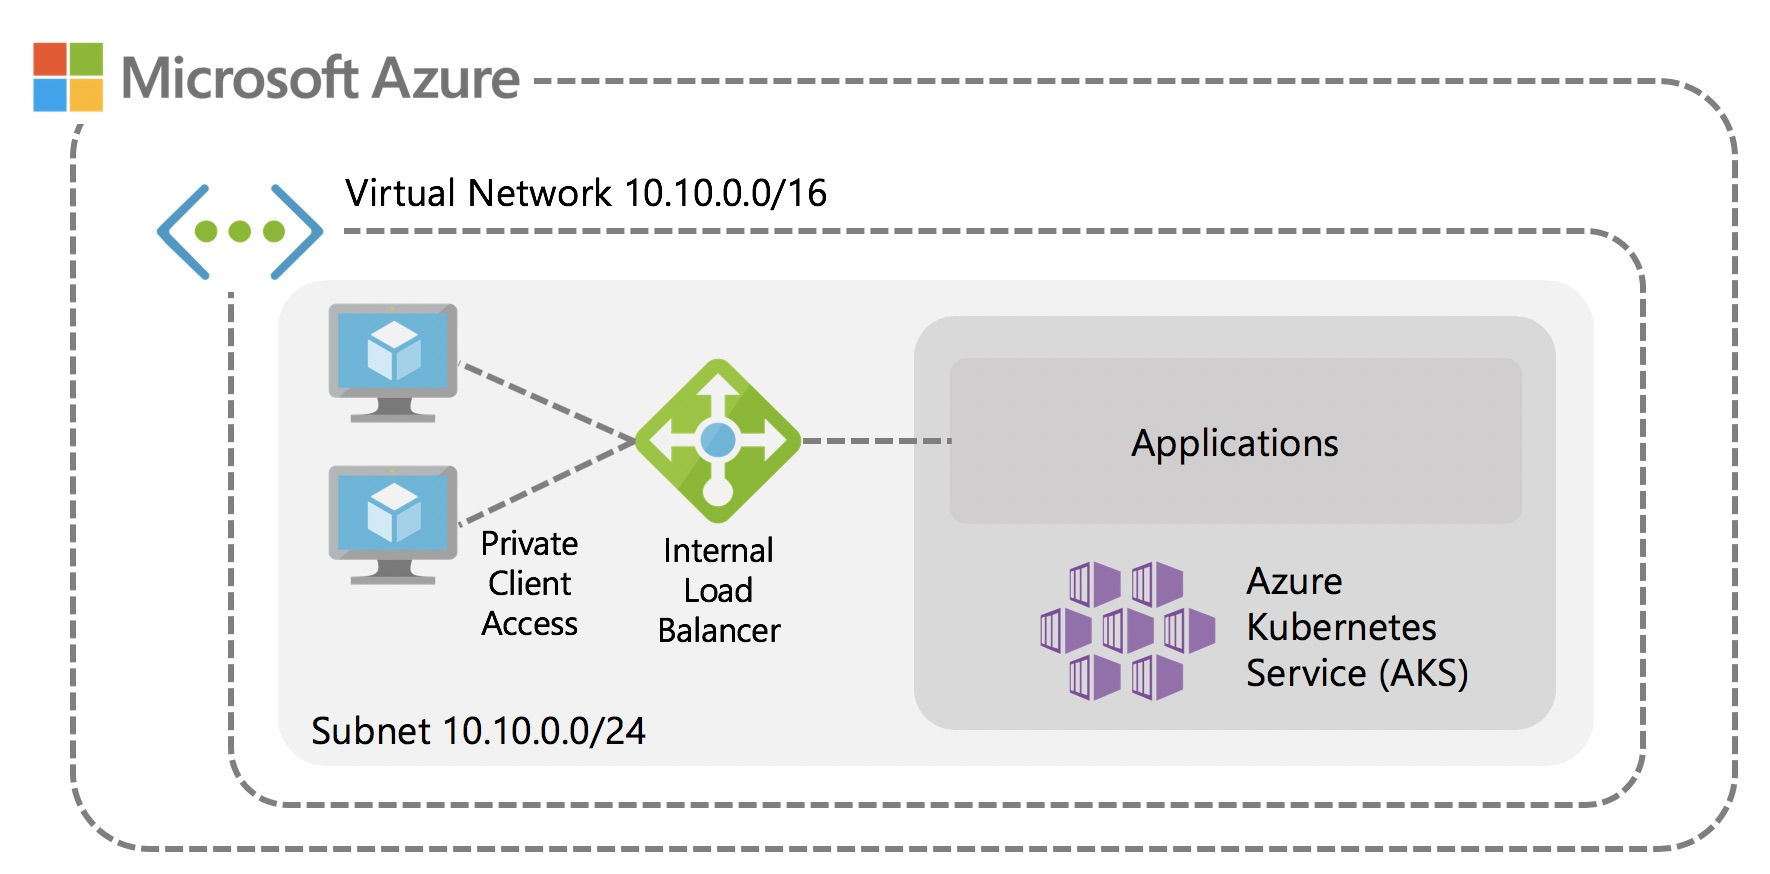 Deploying Internal Applications with private IPs on Azure Kubernetes